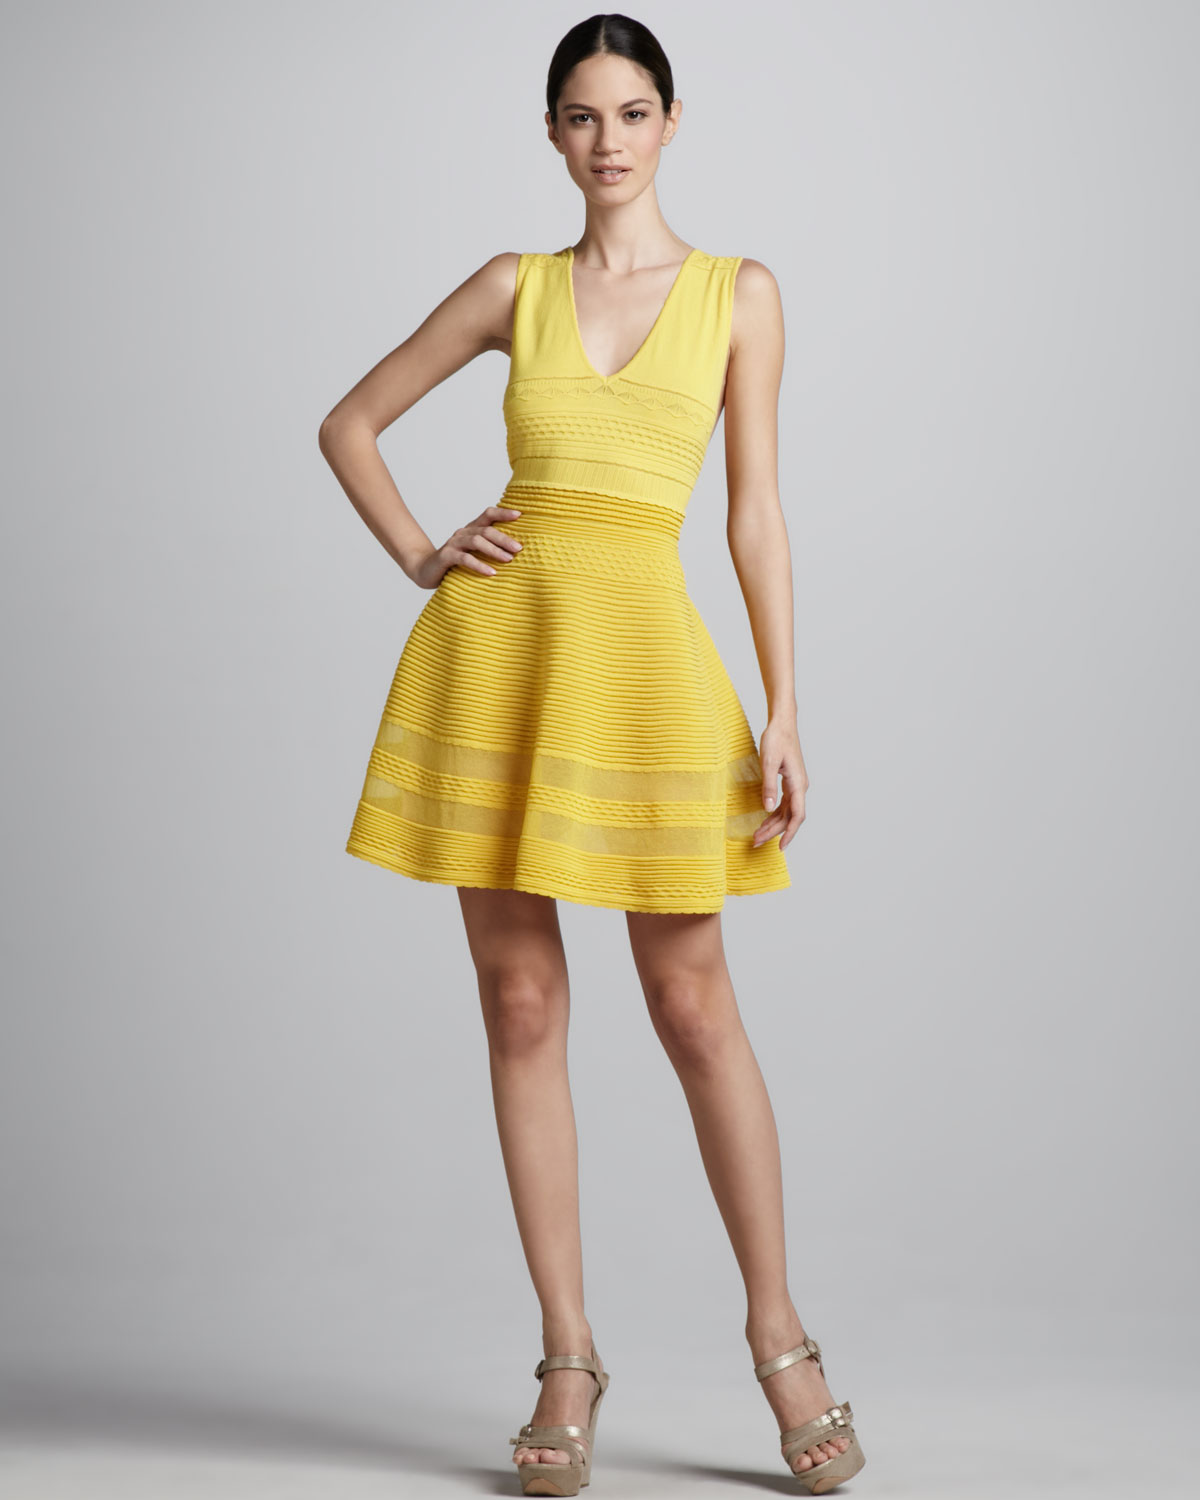 2bb721ad9aa9 Lyst - M Missoni Flouncy Knit Dress in Yellow